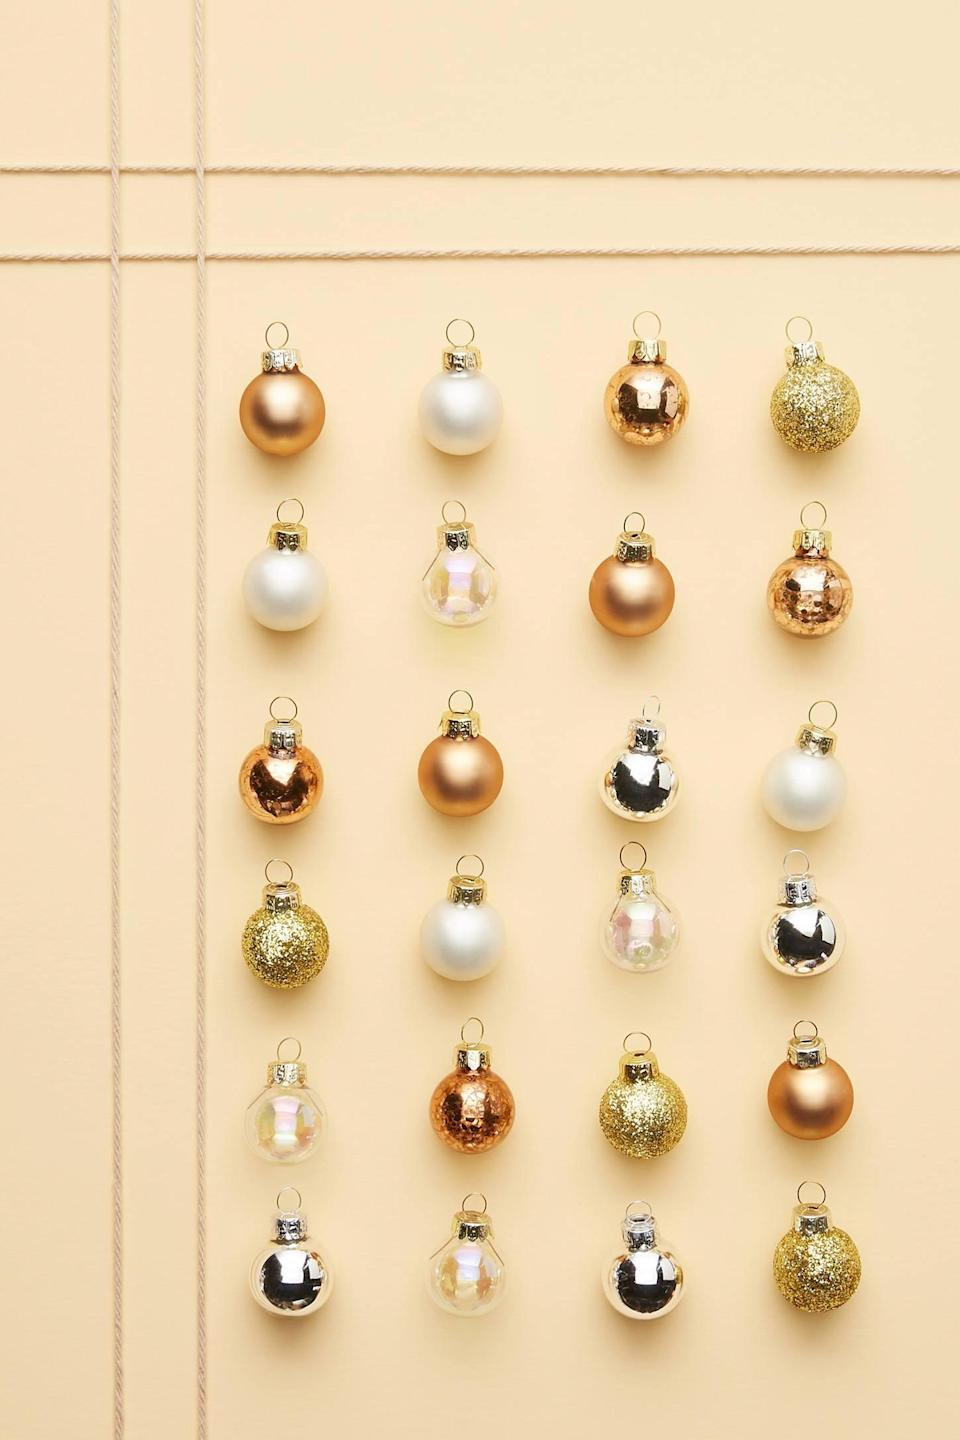 """<p>Add shine and shimmer to your Christmas tree with the <a href=""""https://www.popsugar.com/buy/Copper-Mini-Ornaments-Set-24-490482?p_name=Copper%20Mini%20Ornaments%2C%20Set%20of%2024&retailer=anthropologie.com&pid=490482&price=12&evar1=casa%3Aus&evar9=46615300&evar98=https%3A%2F%2Fwww.popsugar.com%2Fhome%2Fphoto-gallery%2F46615300%2Fimage%2F46615352%2FCopper-Mini-Ornaments-Set-24&list1=shopping%2Canthropologie%2Choliday%2Cchristmas%2Cchristmas%20decorations%2Choliday%20decor%2Chome%20shopping&prop13=mobile&pdata=1"""" rel=""""nofollow noopener"""" class=""""link rapid-noclick-resp"""" target=""""_blank"""" data-ylk=""""slk:Copper Mini Ornaments, Set of 24"""">Copper Mini Ornaments, Set of 24</a> ($12).</p>"""